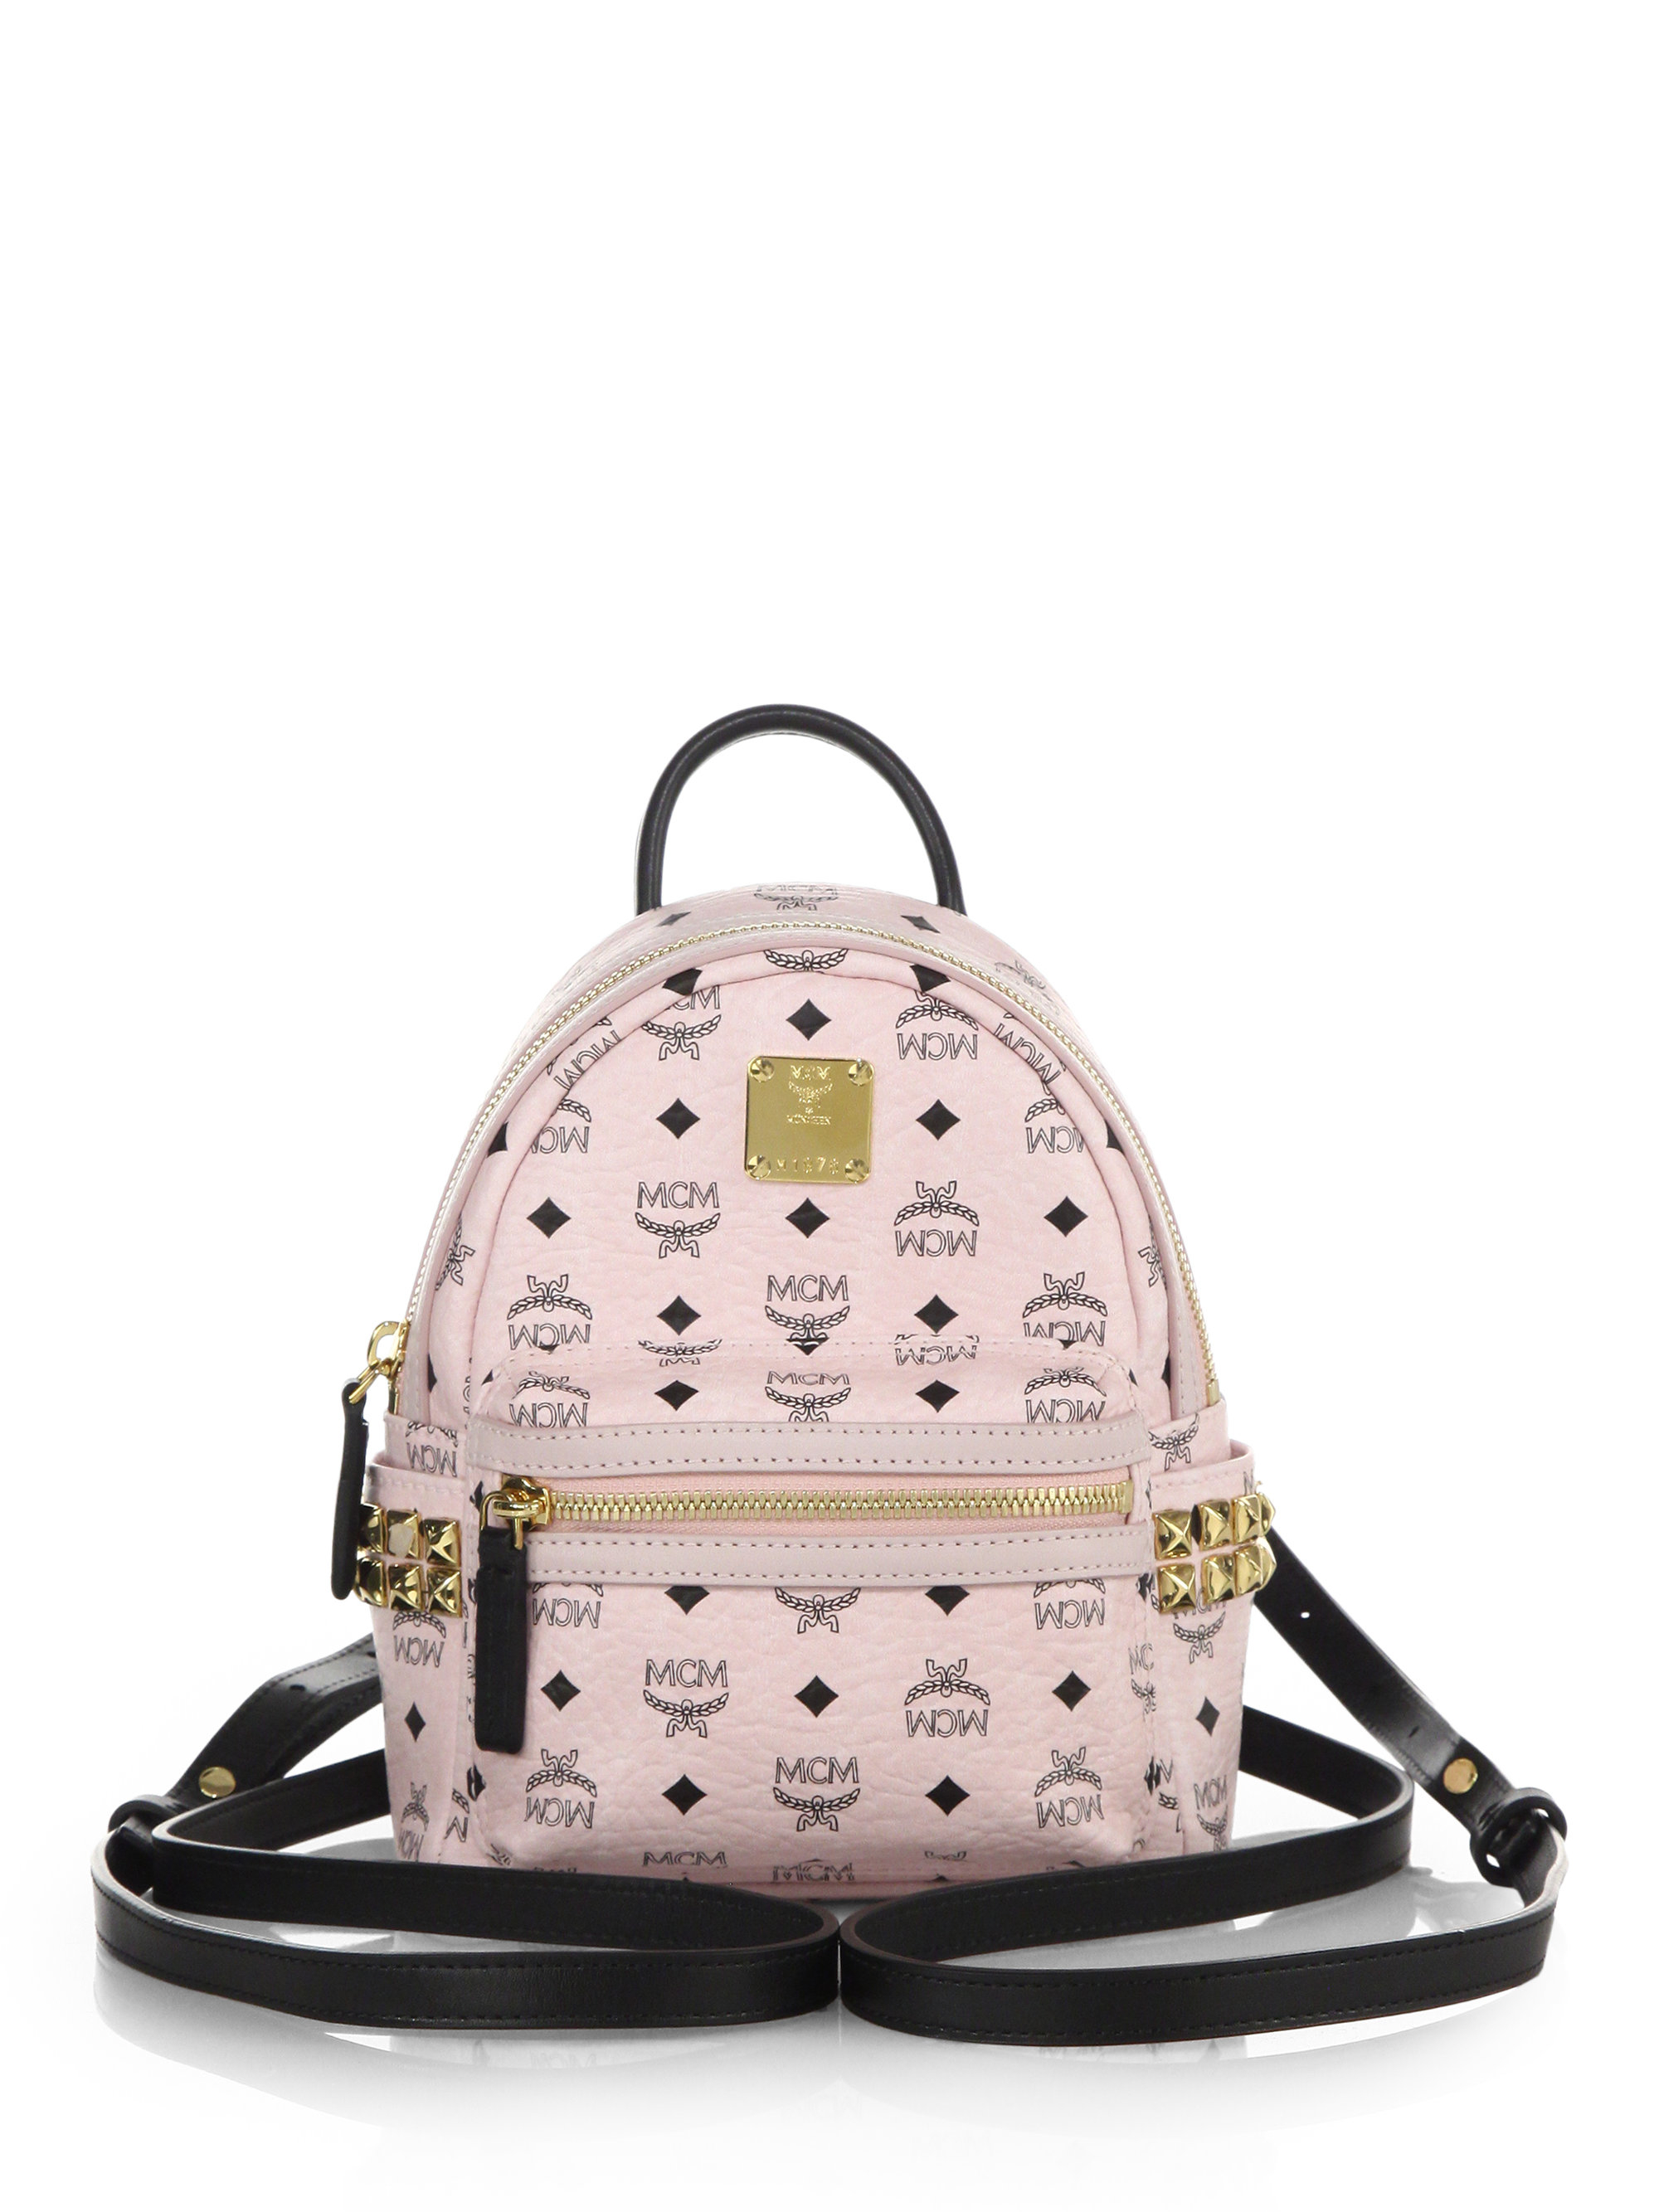 Lyst - MCM Stark Side Stud X Mini Coated Canvas Backpack in White a81e4284a89ee